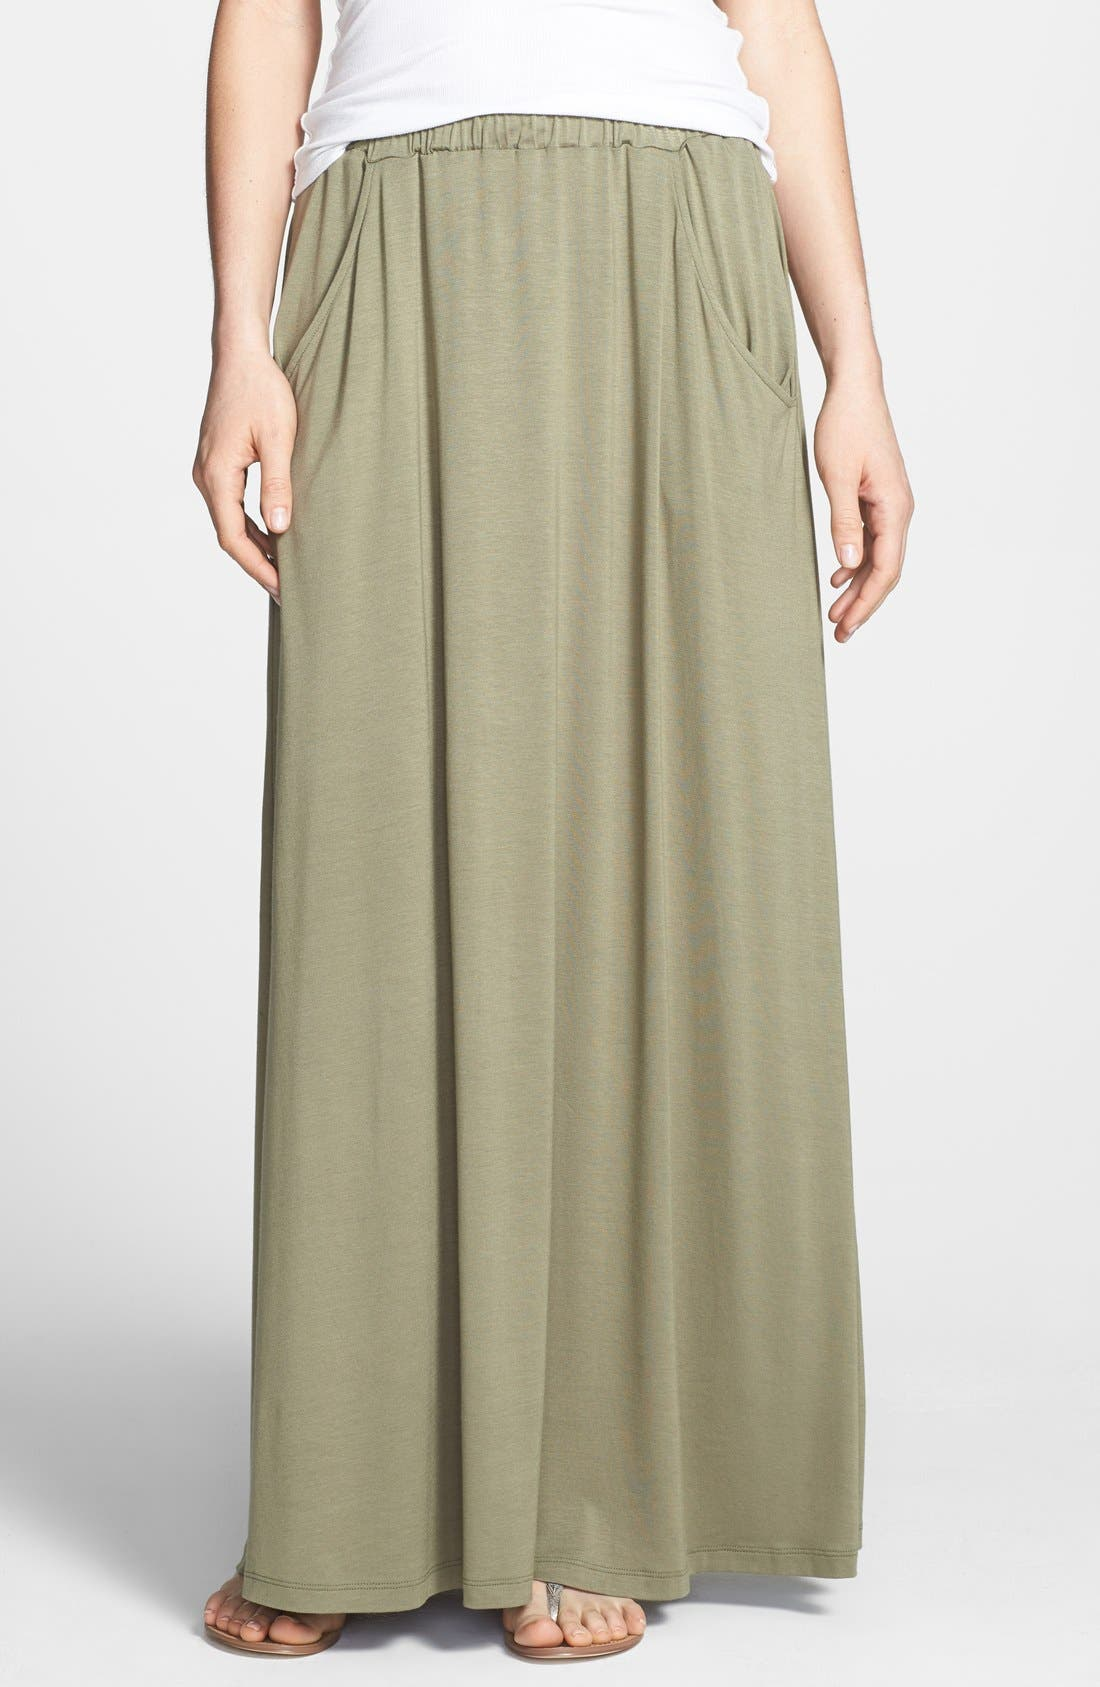 Alternate Image 1 Selected - Pleione Pocket Knit Maxi Skirt